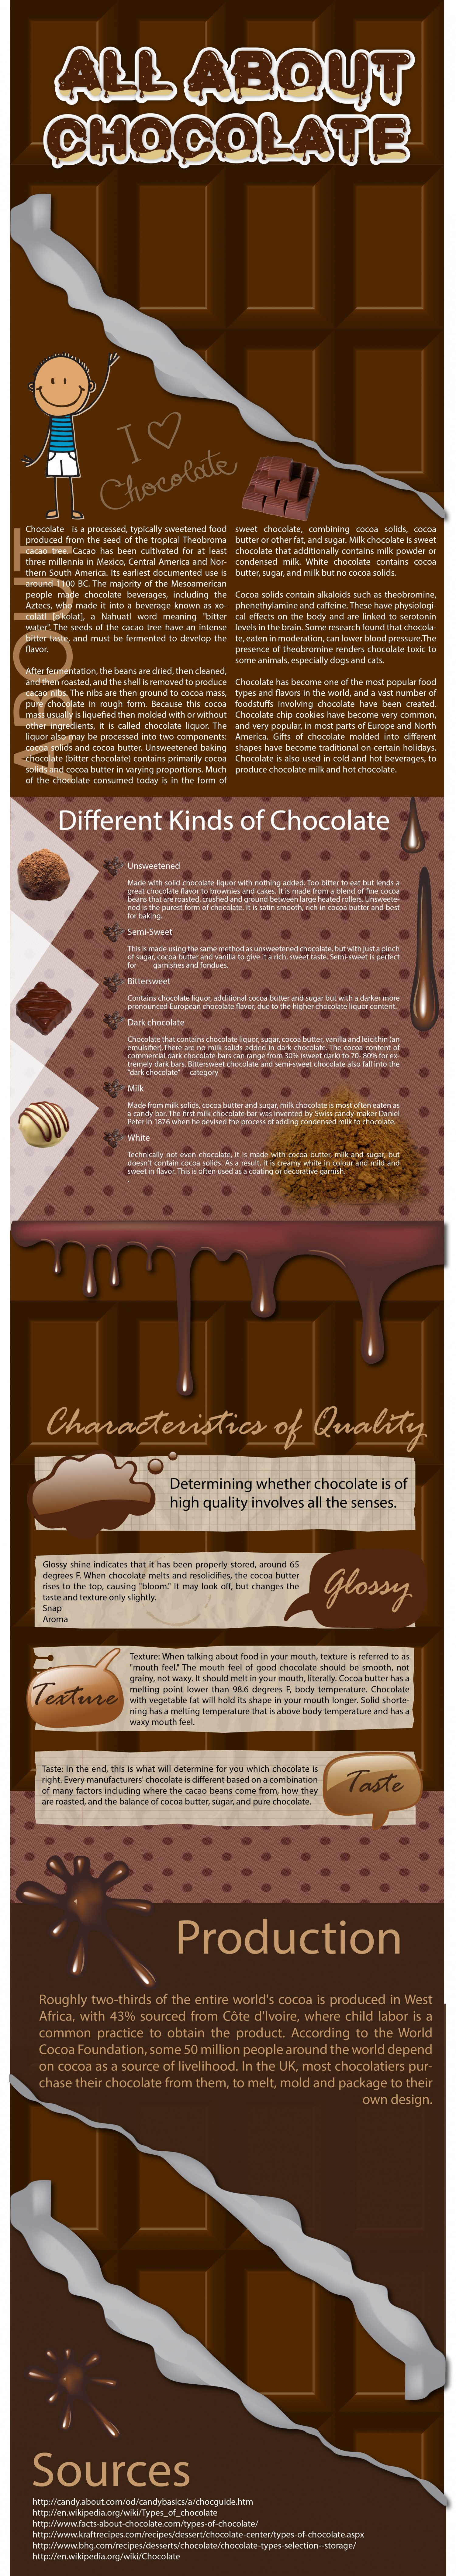 All About Chocalate Infographic